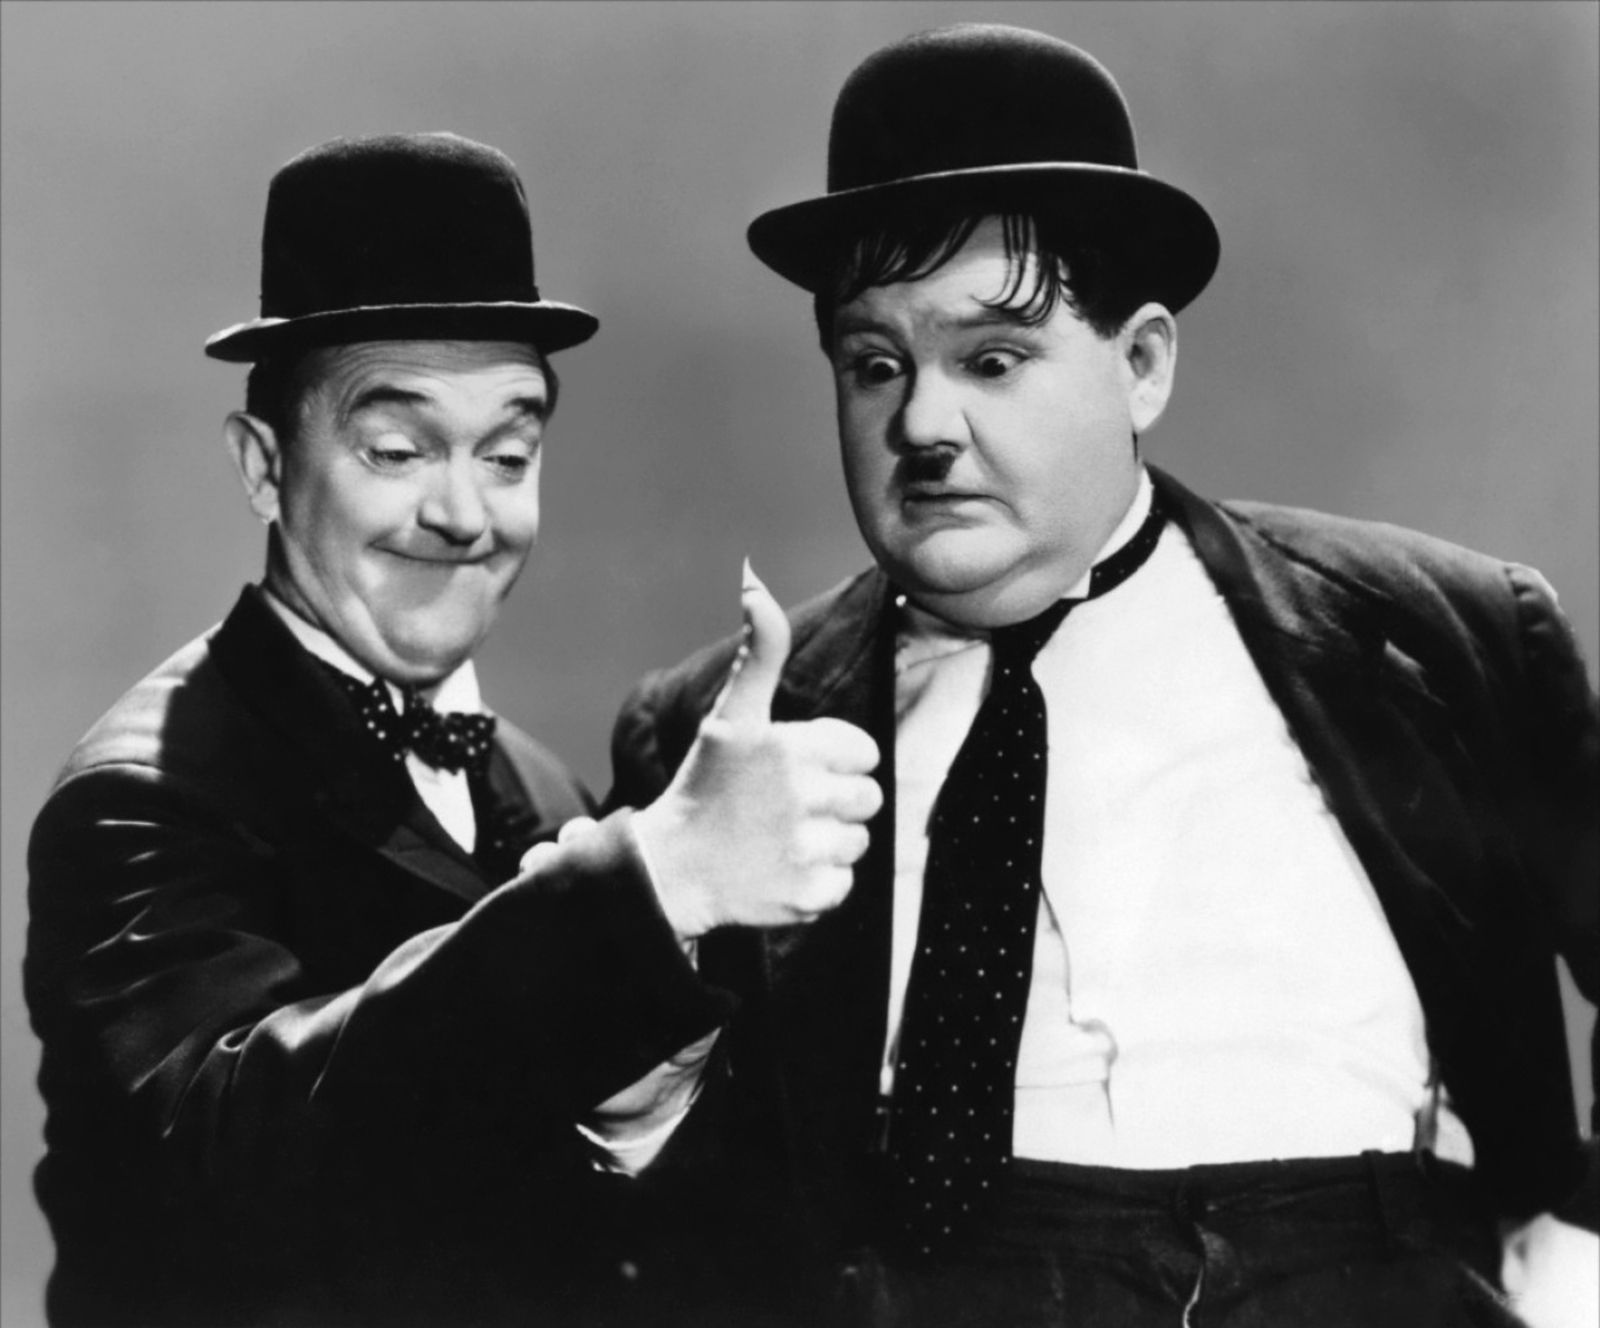 lareal and hardy | Stan Laurel y Oliver Hardy.- "|1600|1328|?|en|2|0801c39093808f82af792935f6b67bb2|False|UNLIKELY|0.3339388072490692